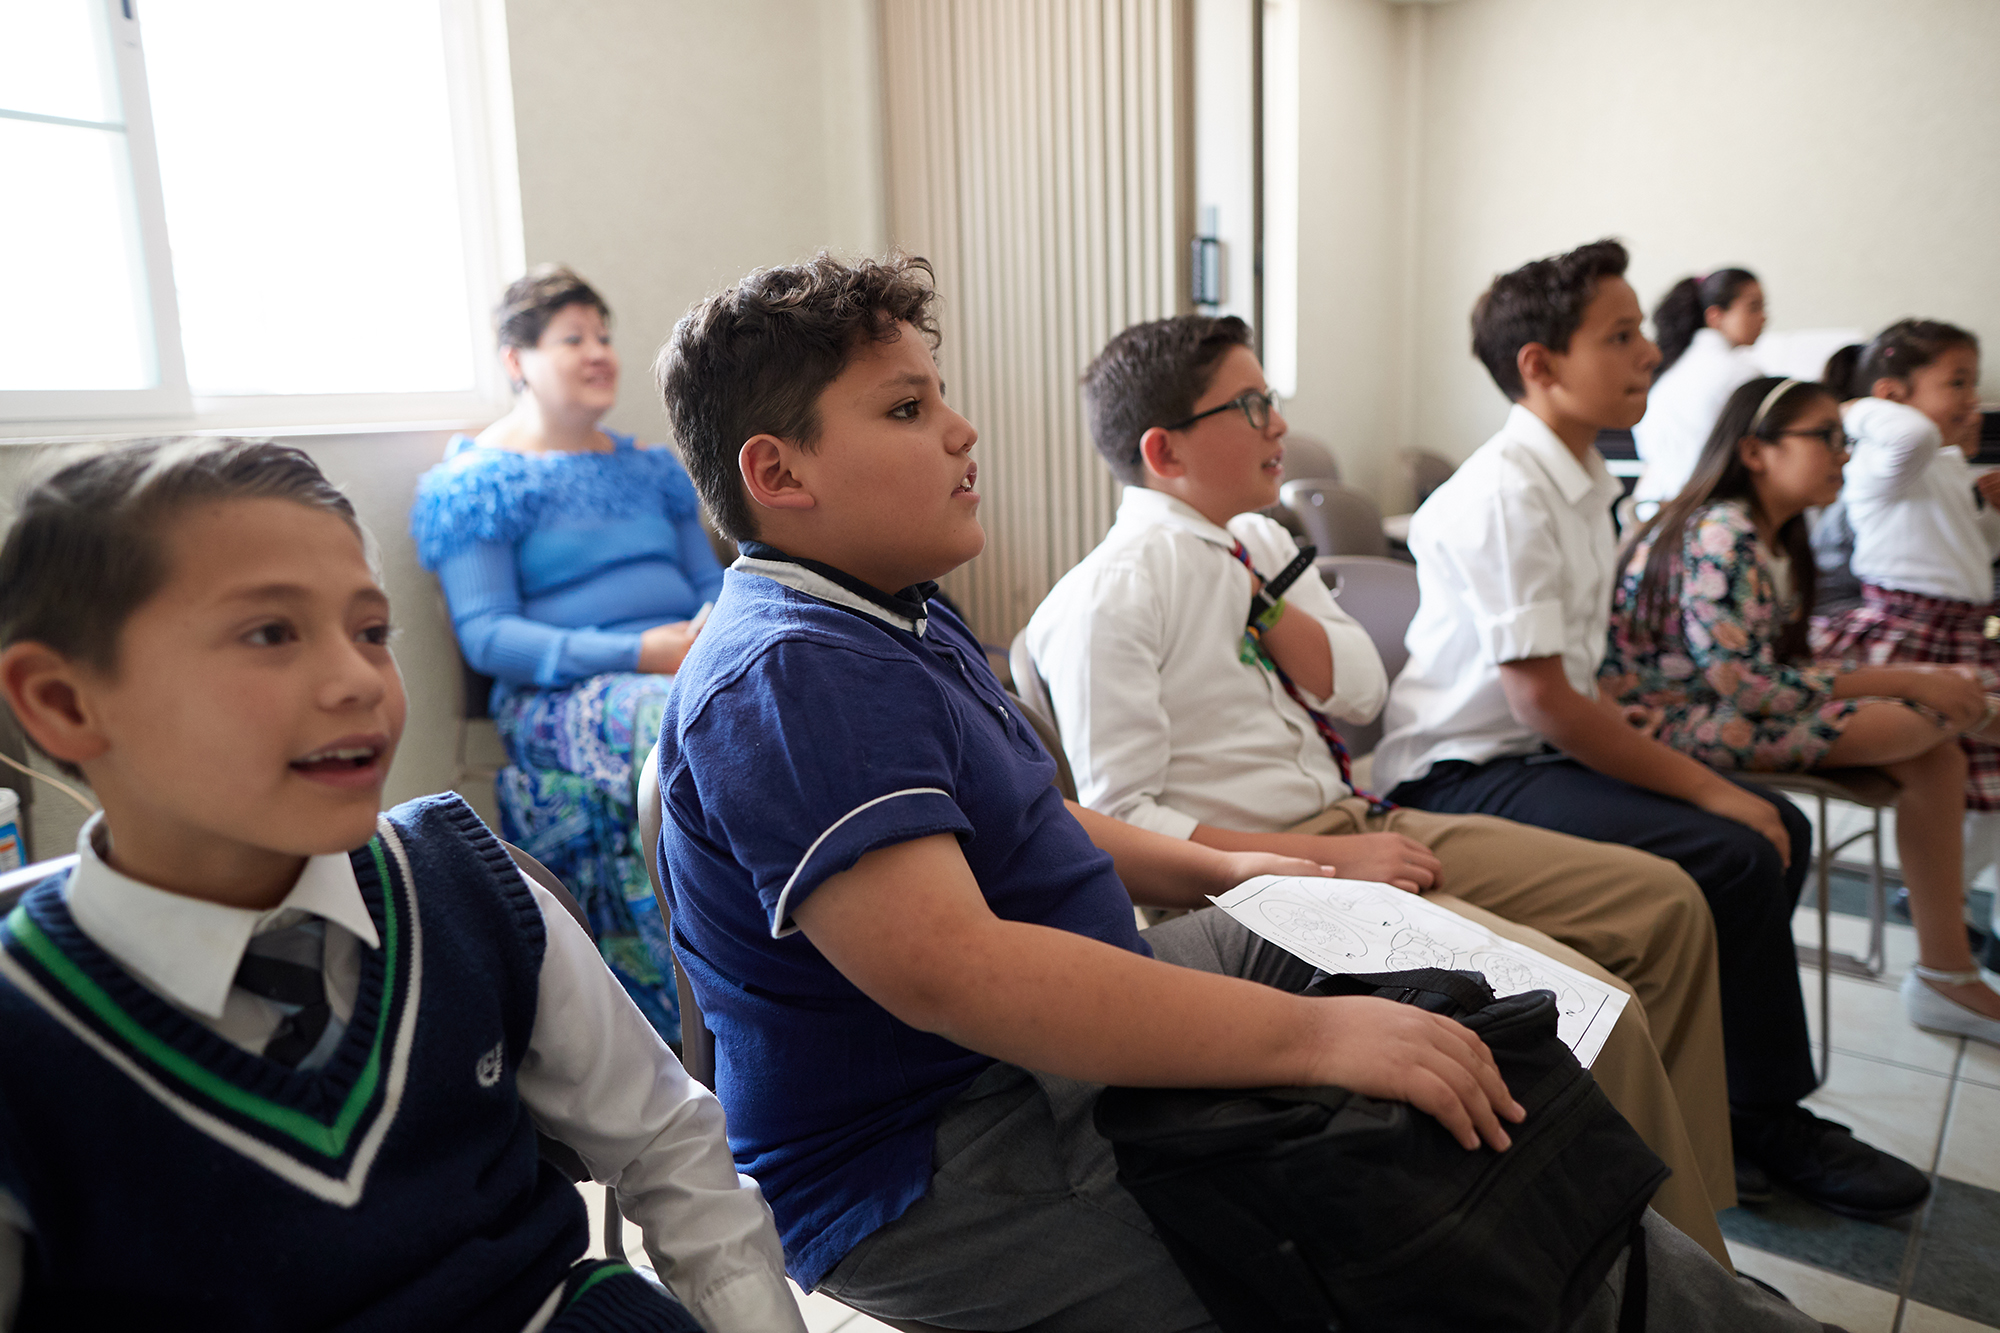 The First Presidency announced changes Dec. 14, 2018, to the timeline children and youth in The Church of Jesus Christ of Latter-day Saints will complete Primary, move from one class or quorum to the next and attend the temple for the first time. The changes also impact when young men may be ordained to priesthood offices.